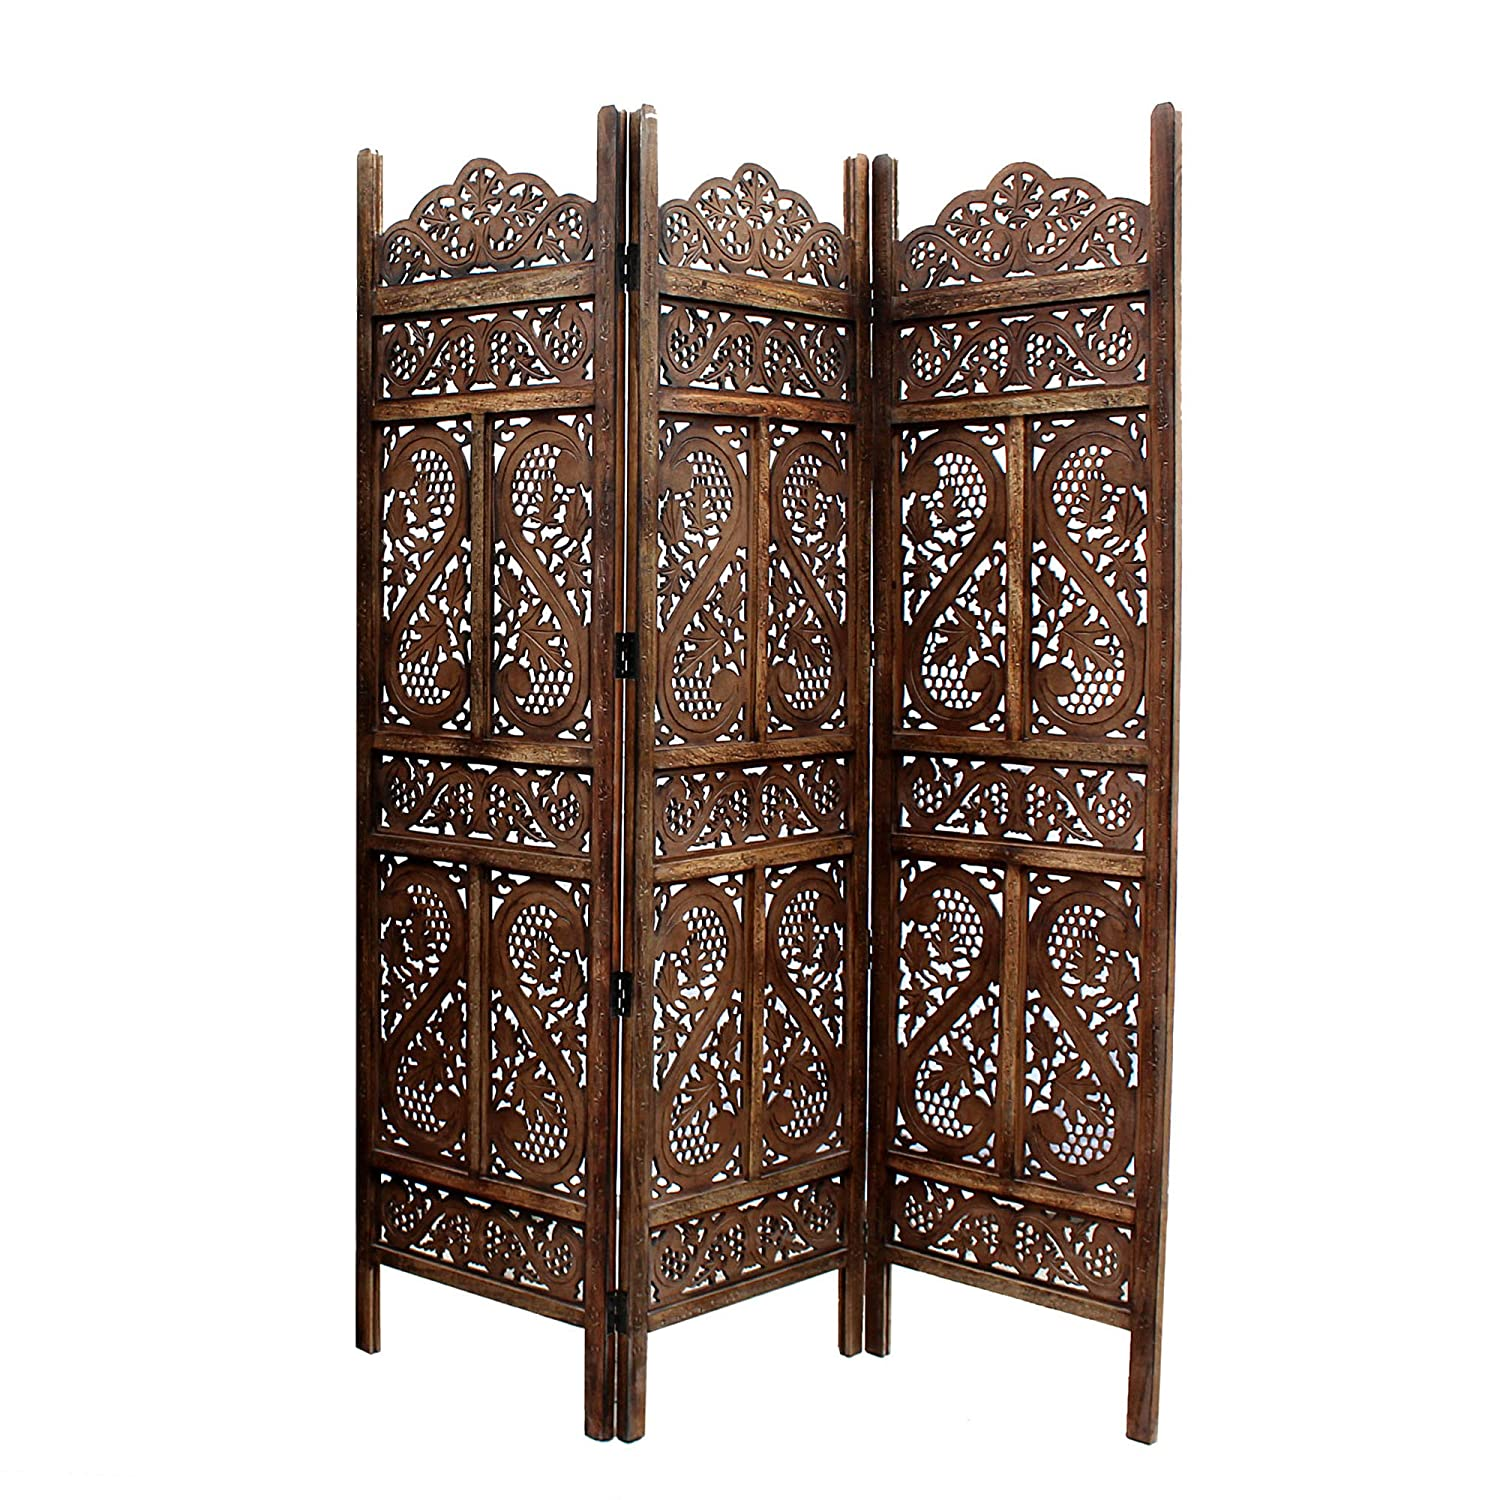 Artesia Handcrafted 3 Panel Wooden Room Partition/Screen Seperator